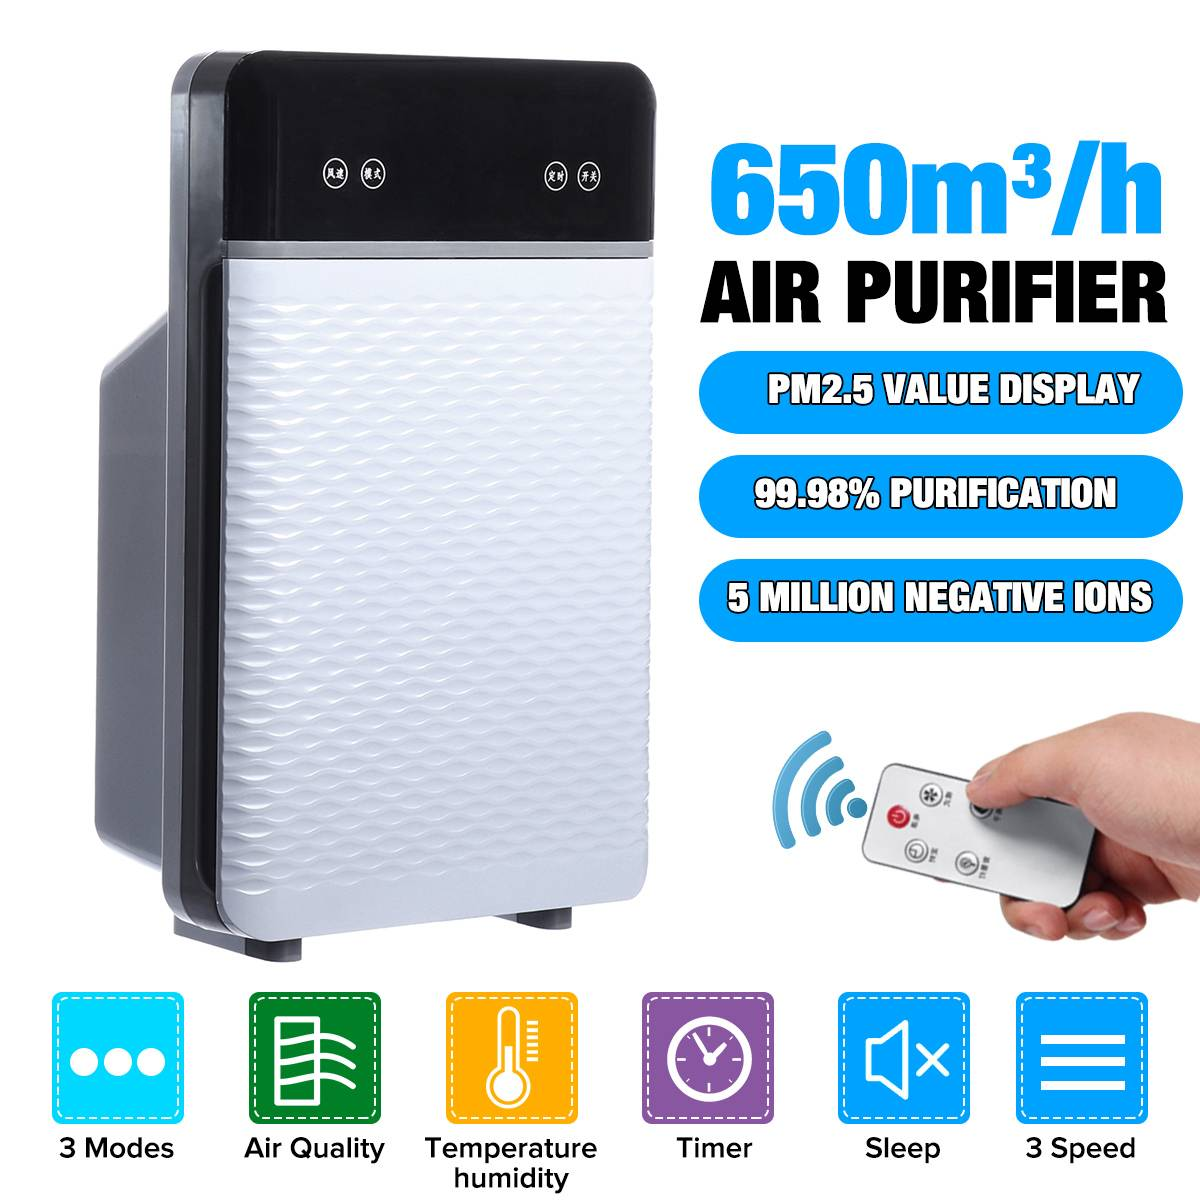 AUGIENB Large Room Air Purifier True HEPA Filter,  For Smoke, Dust, VOCs, Pollen, Pet Dander,PM2.5,Odor Allergies, Home Office